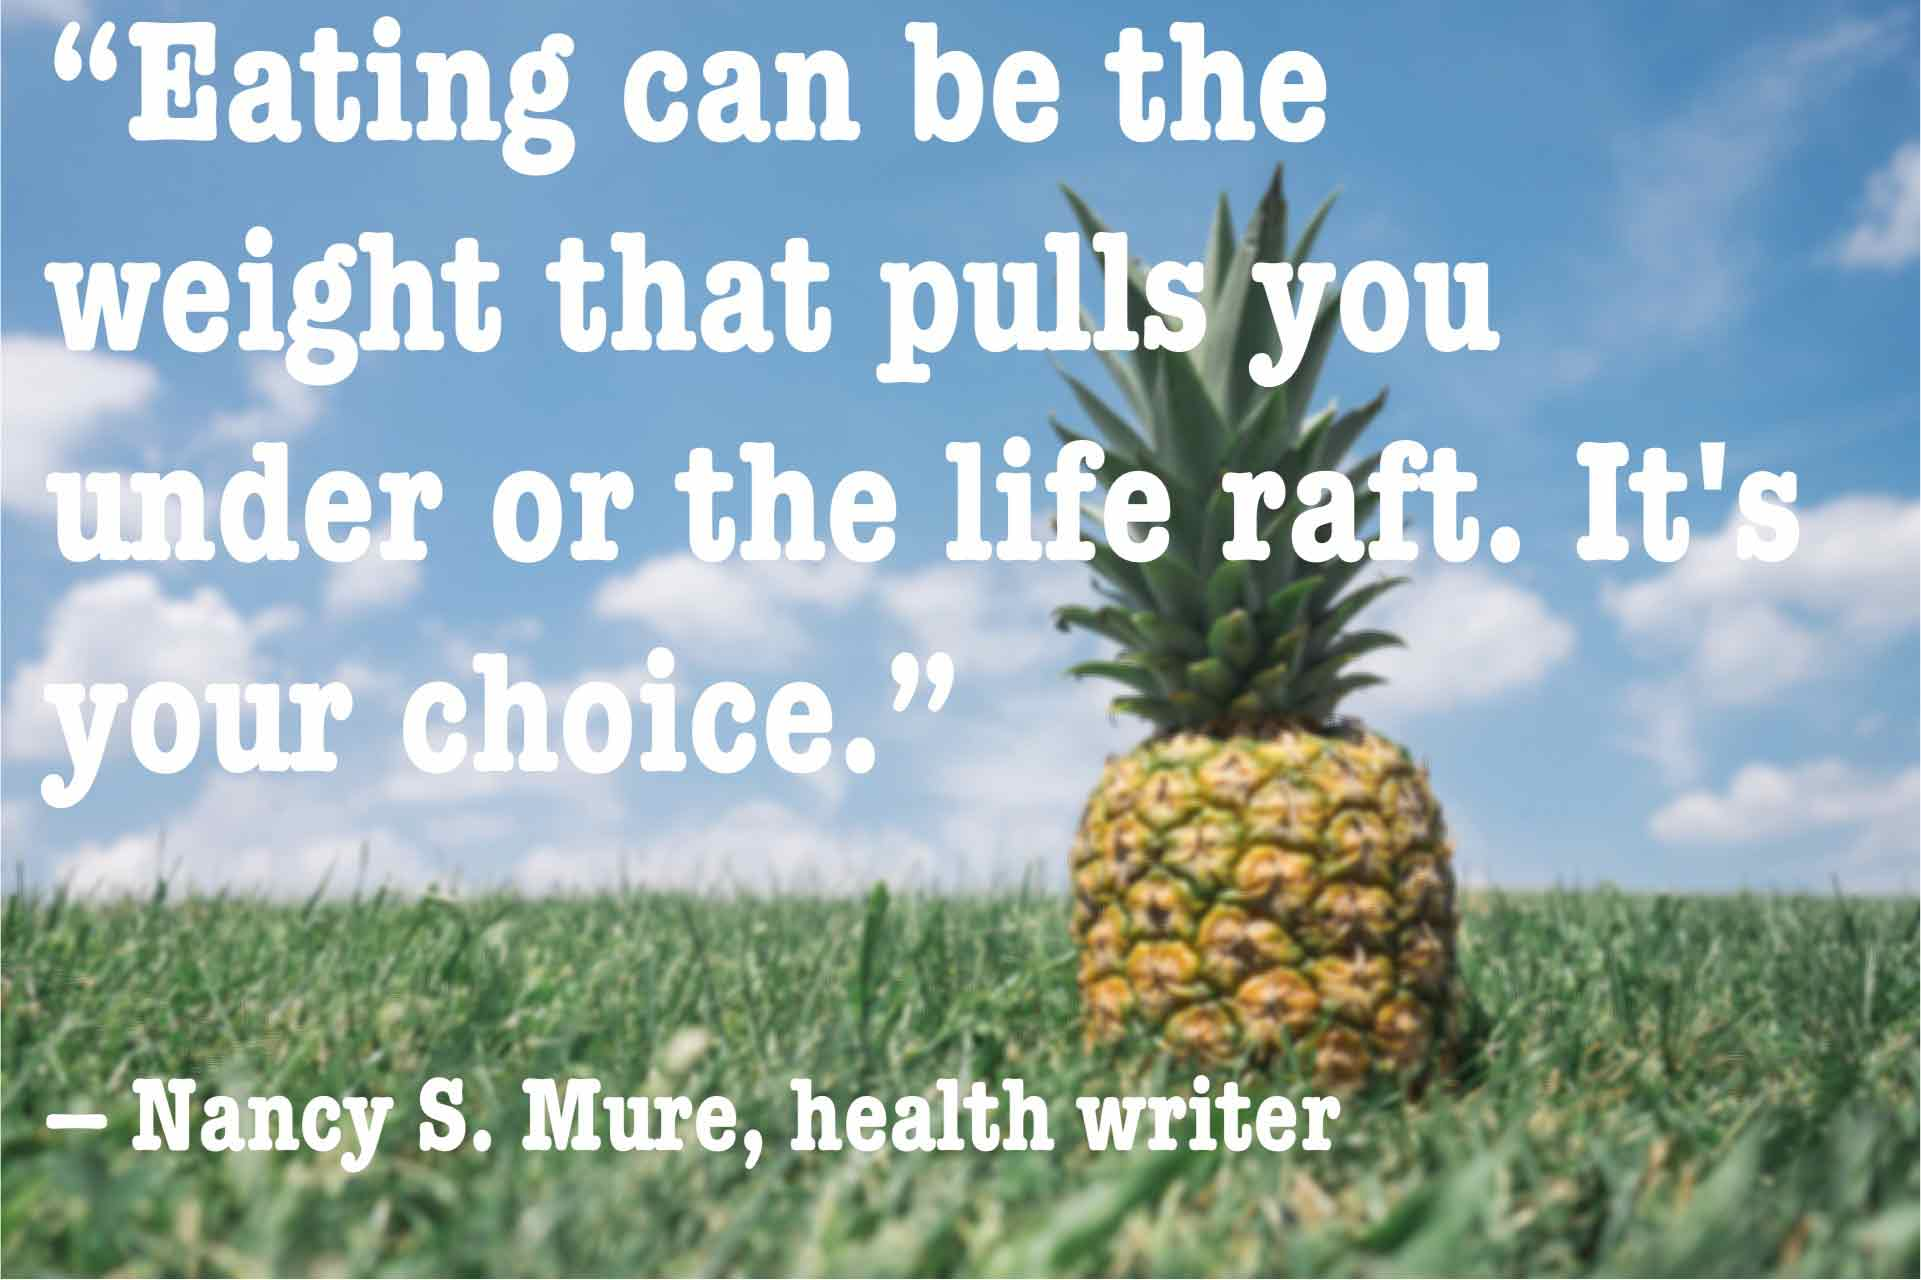 Nancy Mure quote about eating